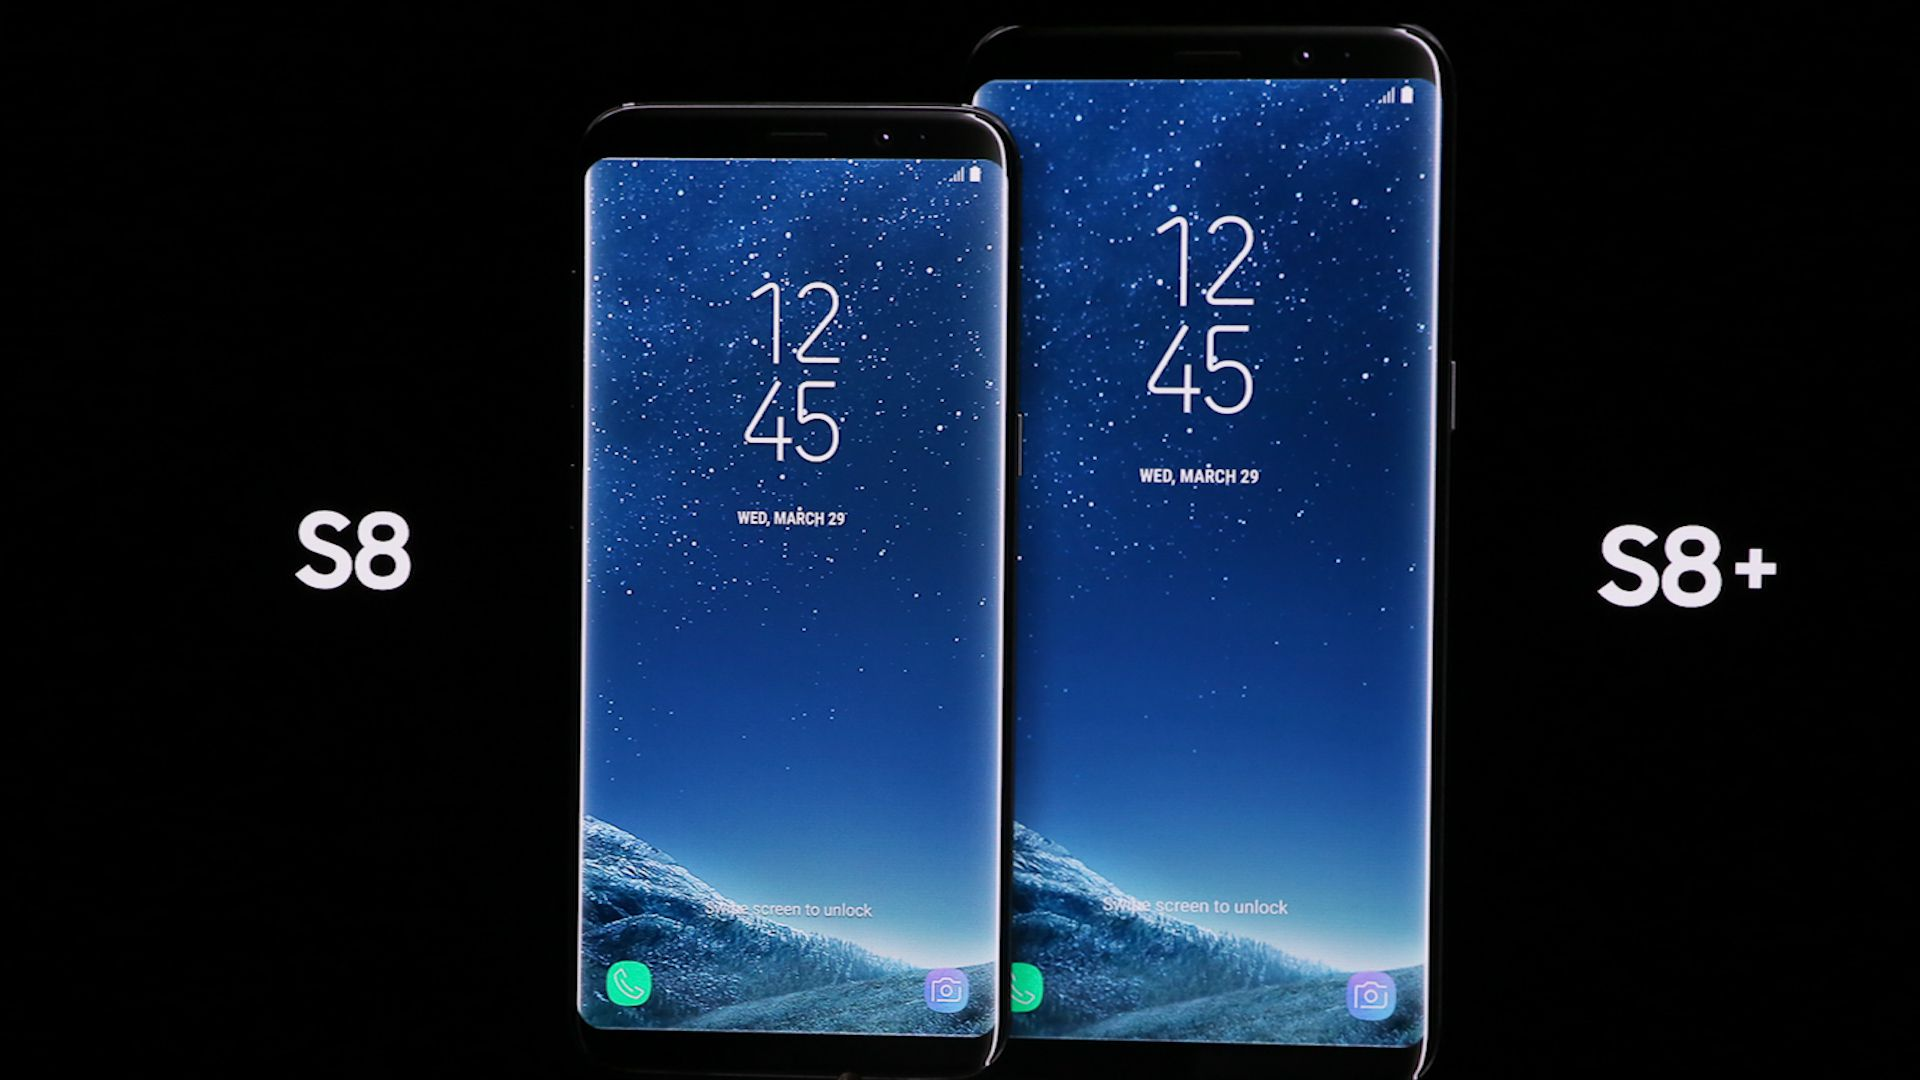 Samsung proudly shows off the Galaxy S8 and S8 Plus 1920x1080